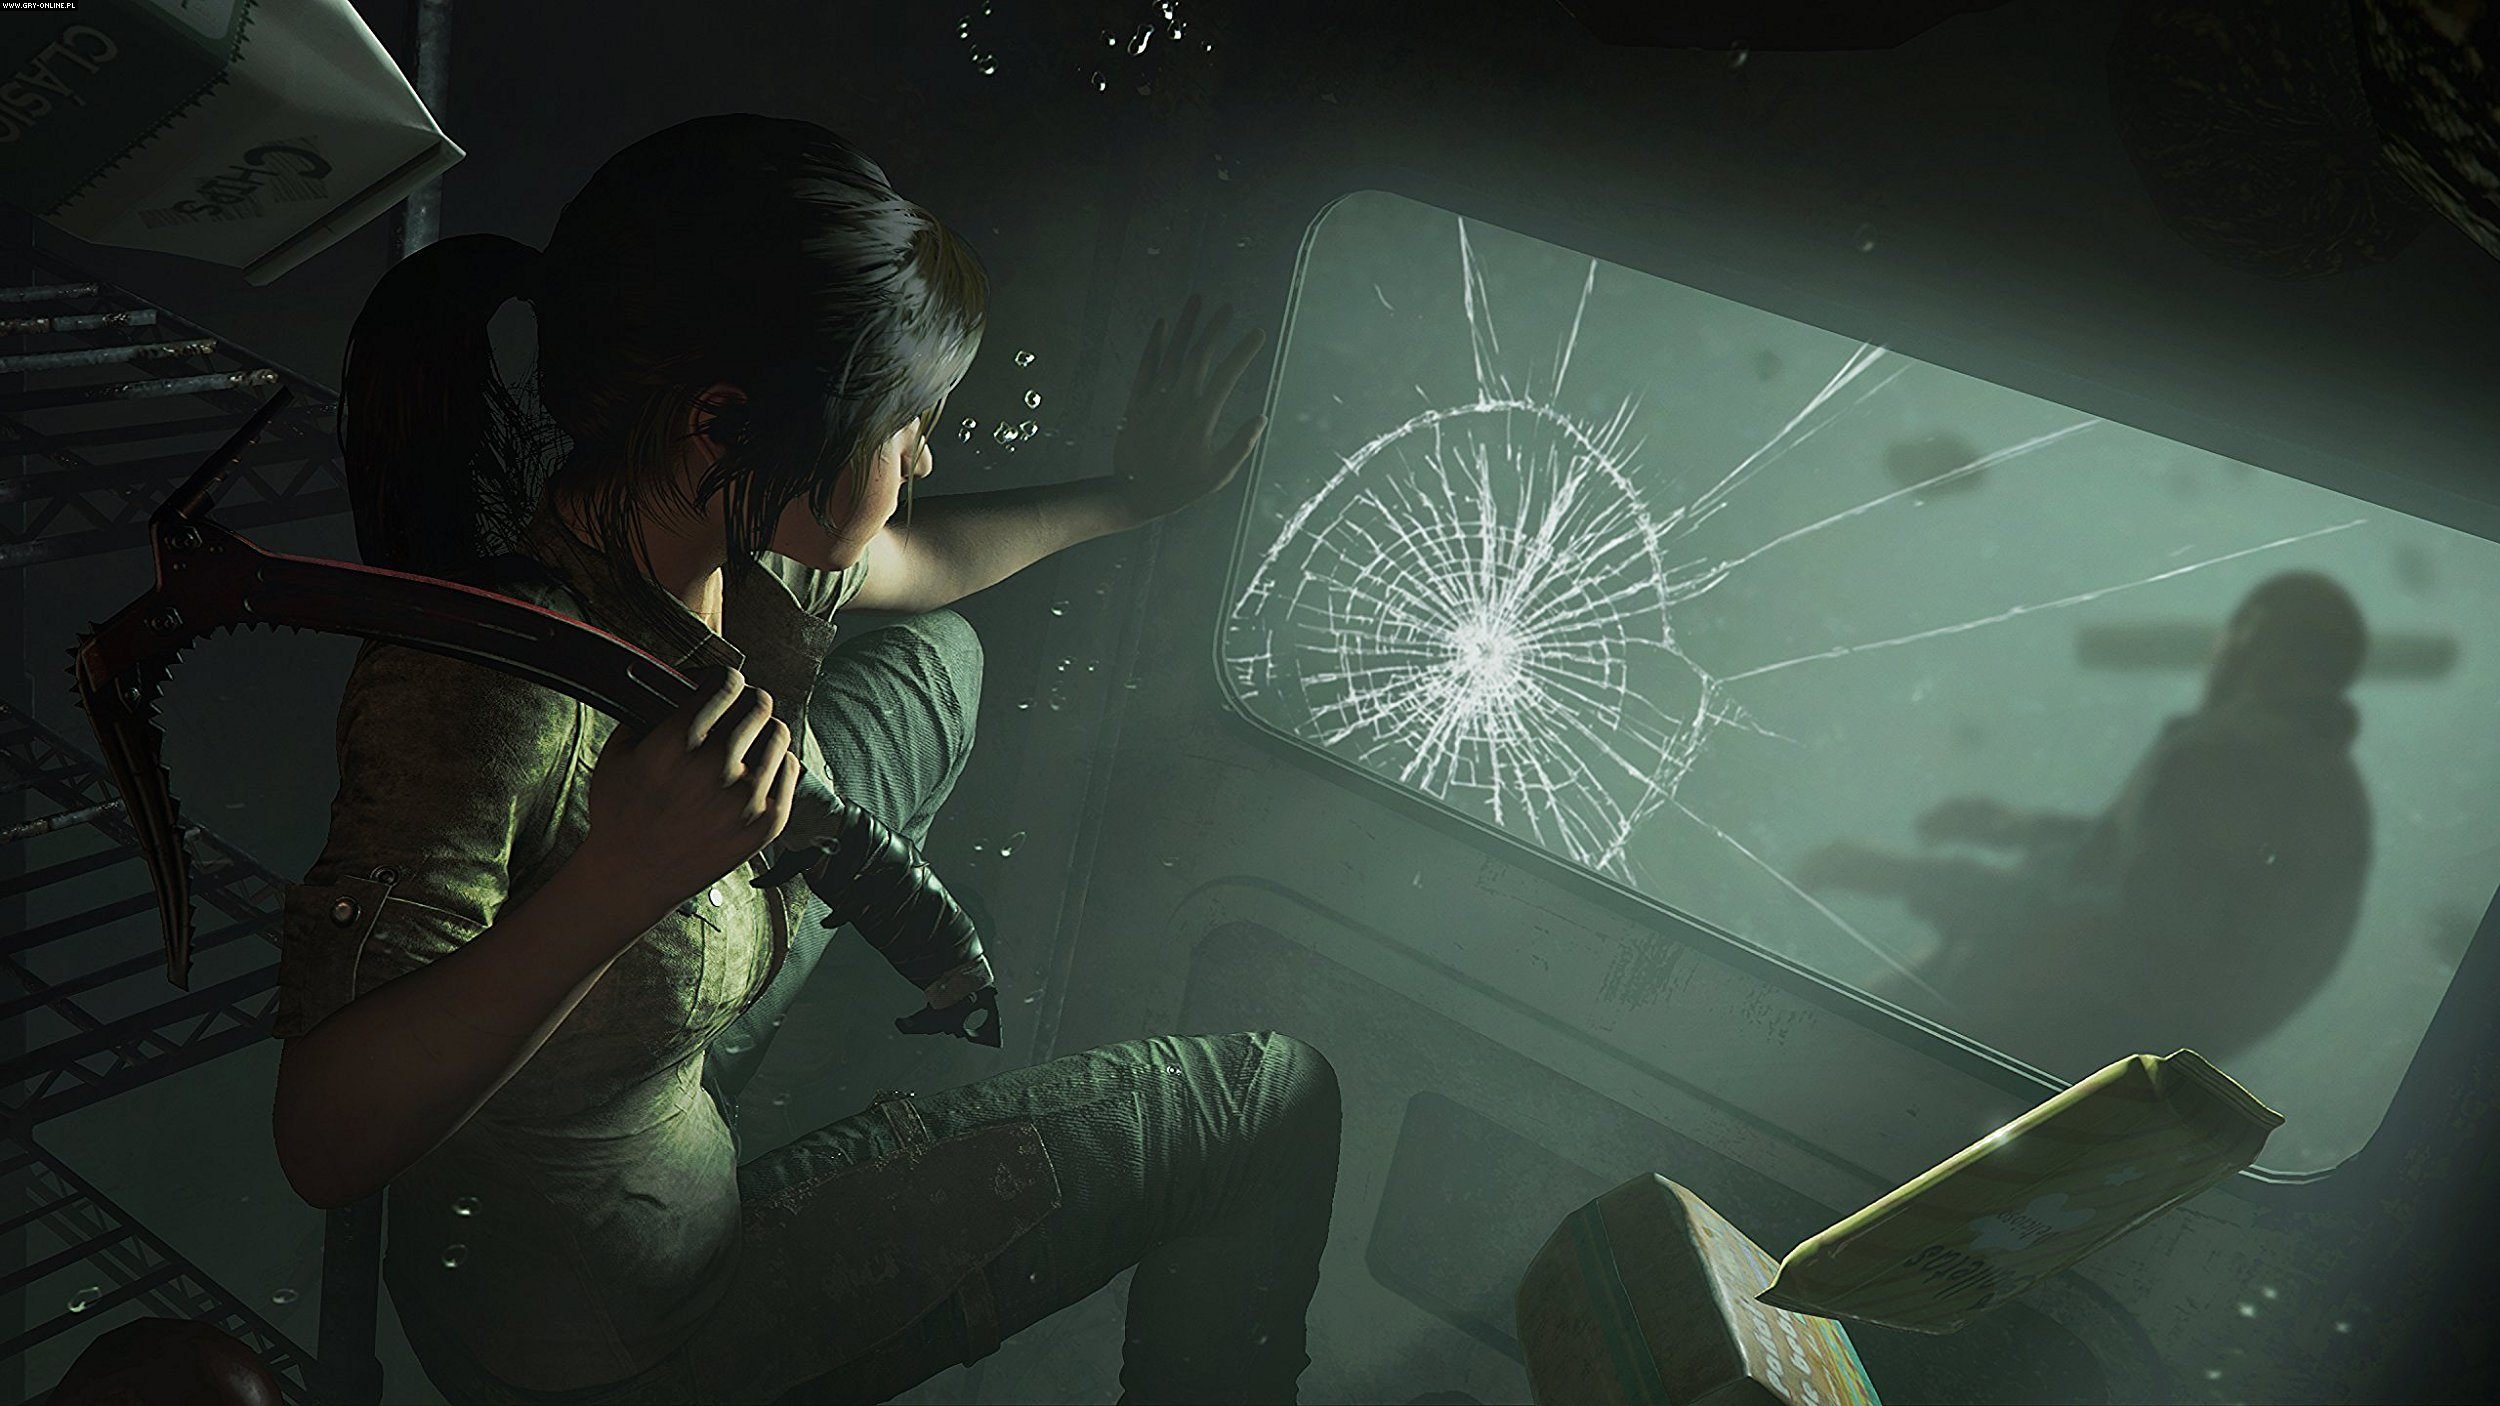 Shadow of the Tomb Raider PC, PS4, XONE Games Image 15/20, Nixxes Software, Square-Enix / Eidos